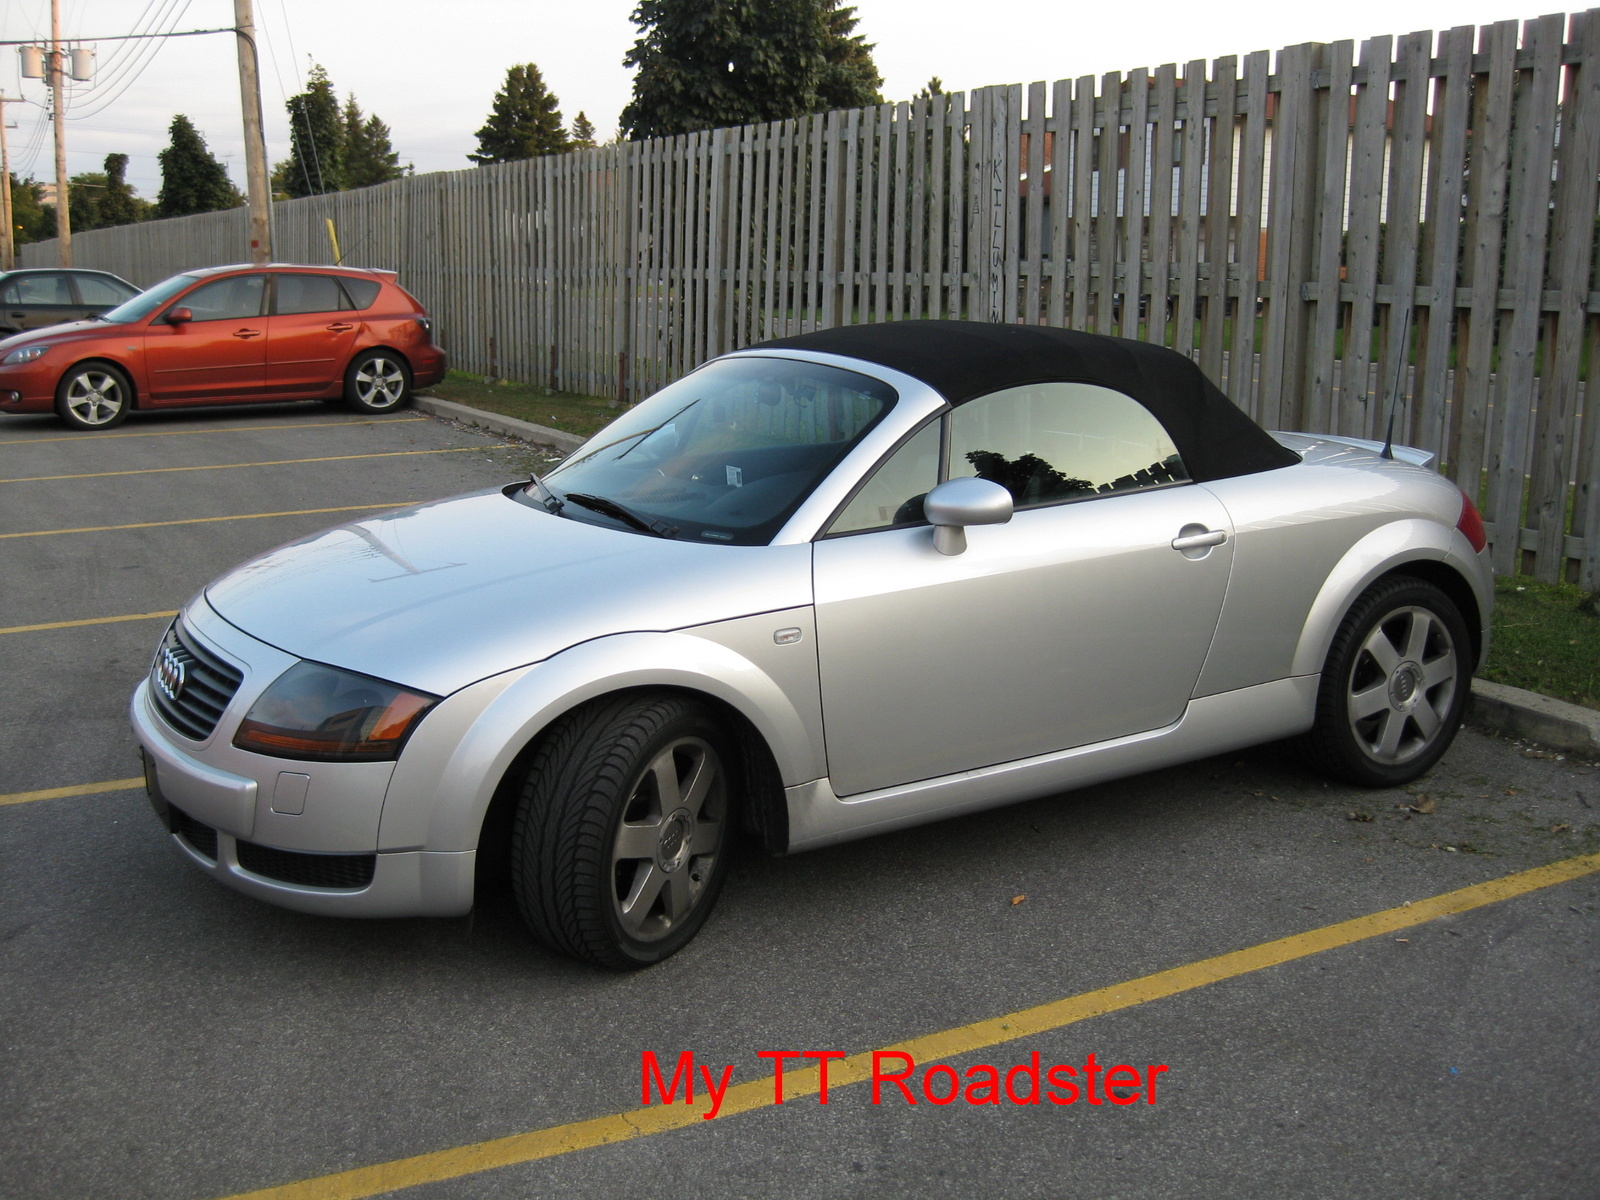 2000 Audi Tt Roadster (47 Images) - New HD Car Wallpaper